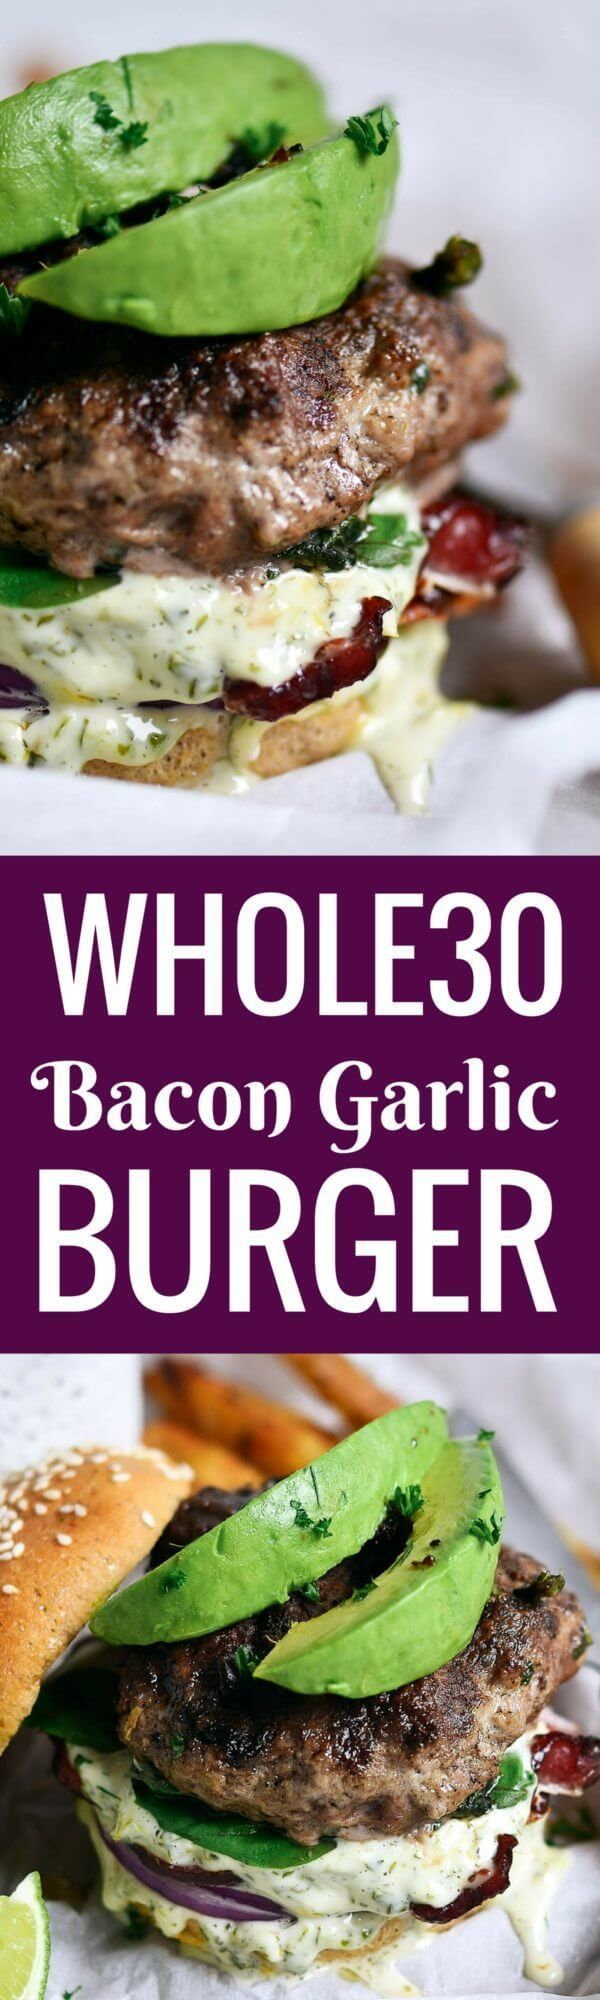 LEGIT whole30 bacon avocado burgers! Loaded with fresh basil and garlic. Topped with a creamy white sauce and red onion.